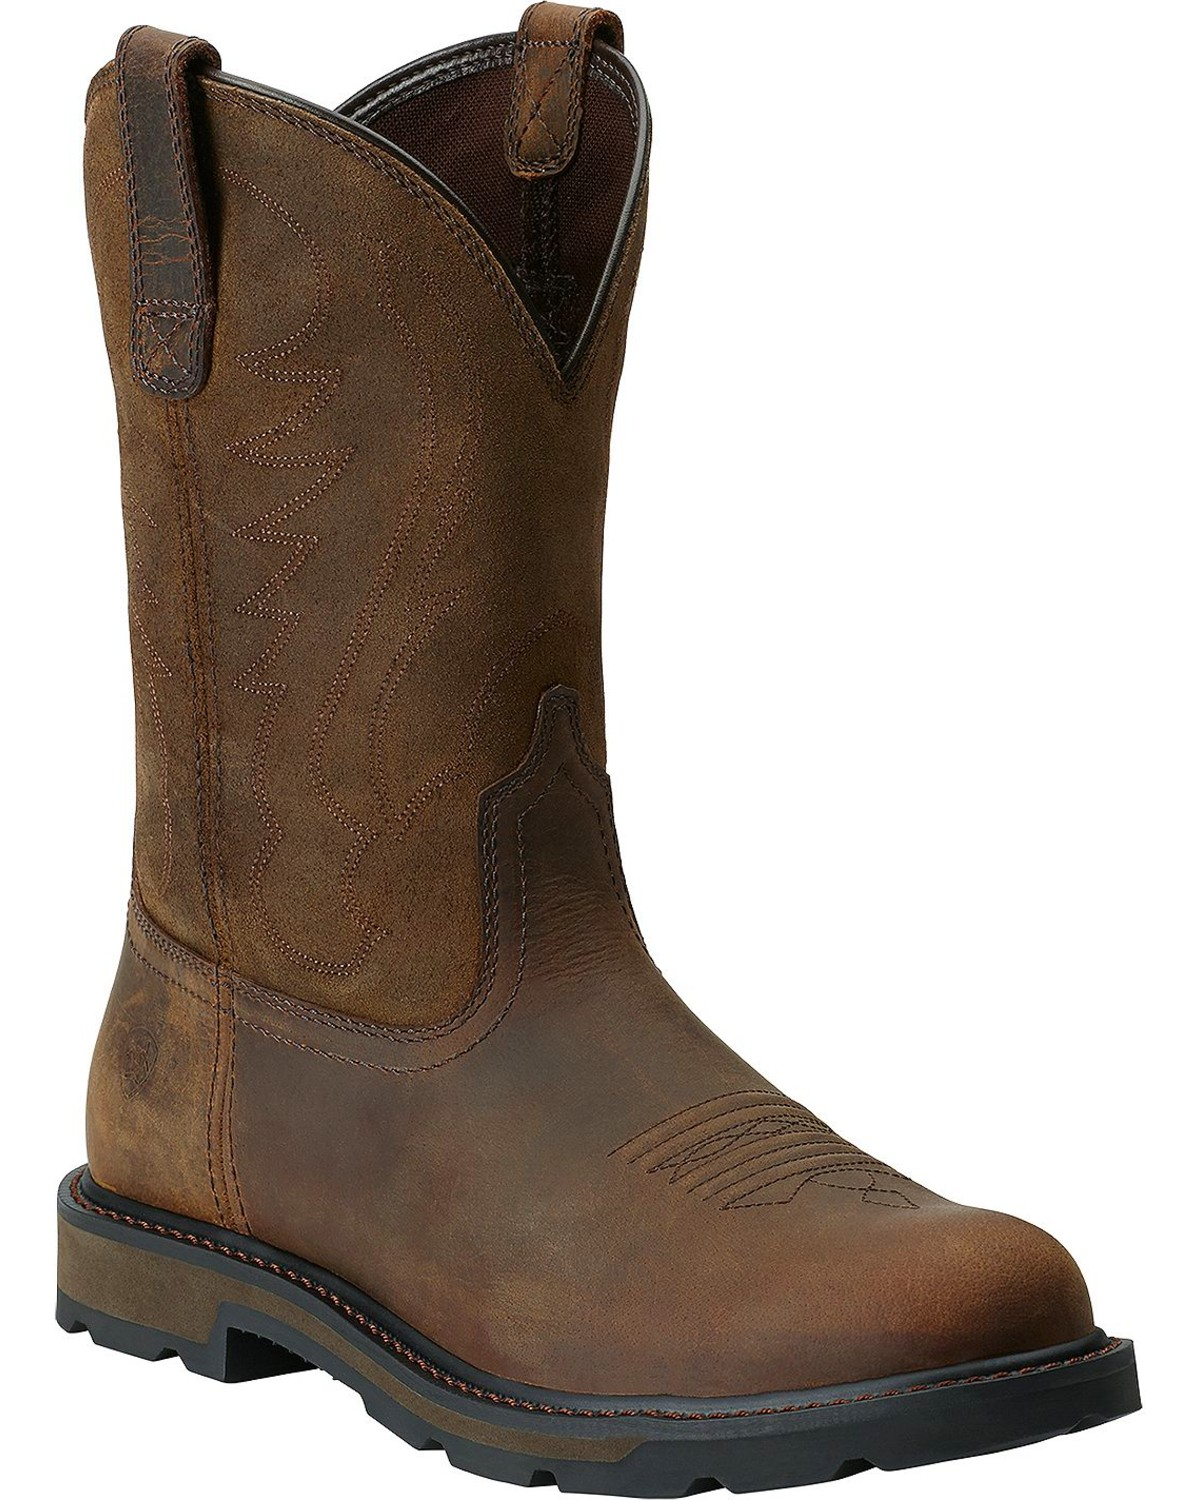 a6e458dff5b Ariat Groundbreaker Pull-On Work Boots - Round Toe